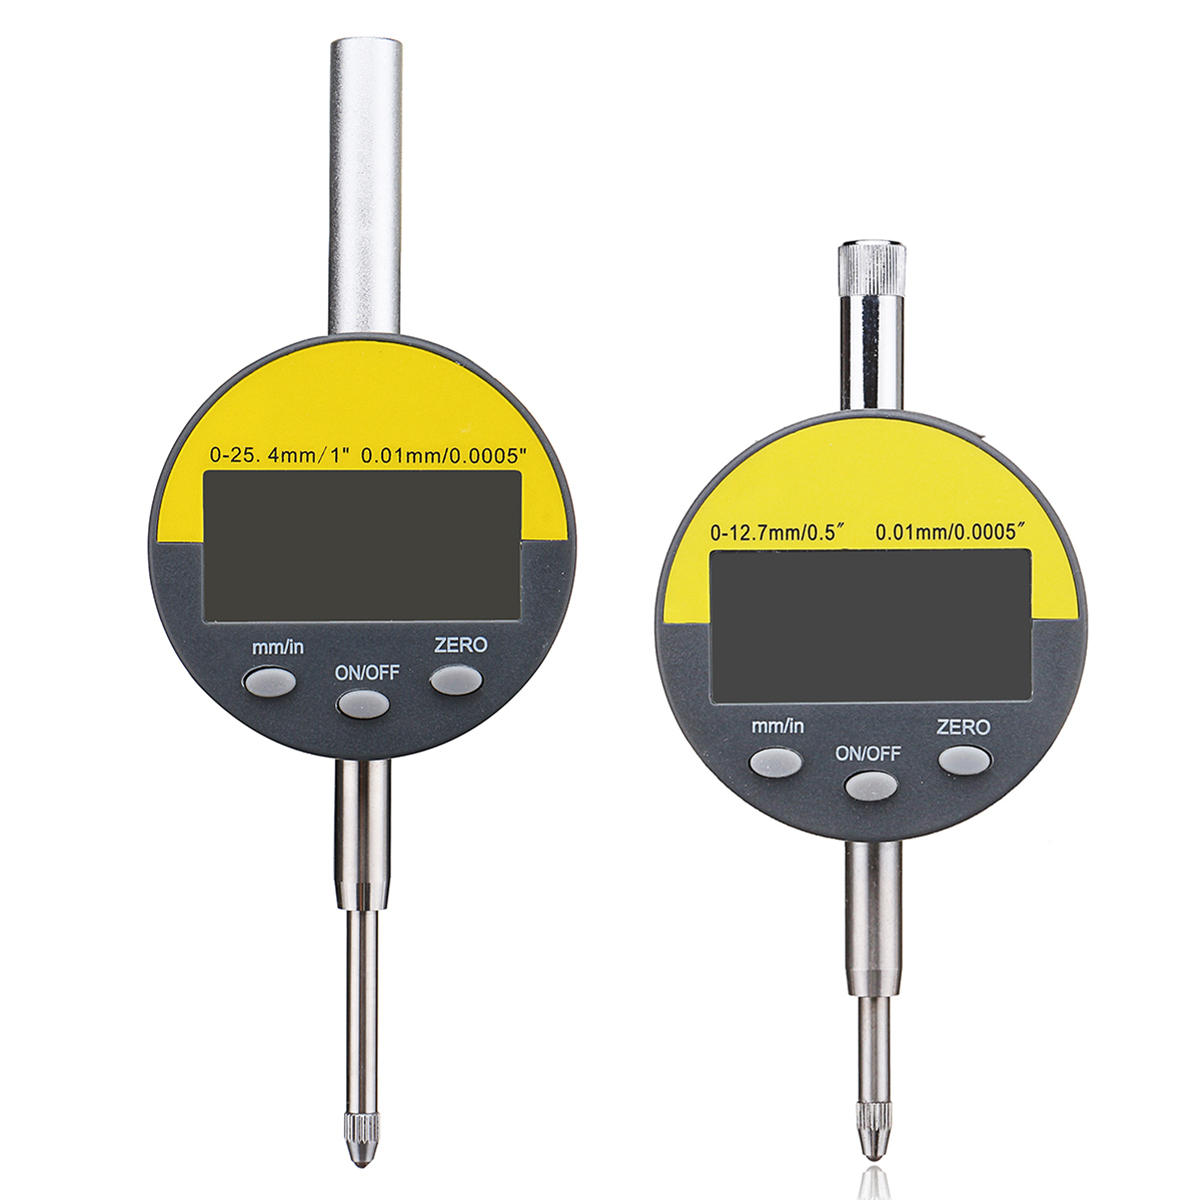 Digital Dial Indicator Gauge Precision Tool Mm Inch 0 12 7mm 0 25 4mm Measurement Analysis Instruments From Tools On Banggood Com Precision Tools St Kitts And Nevis Digital